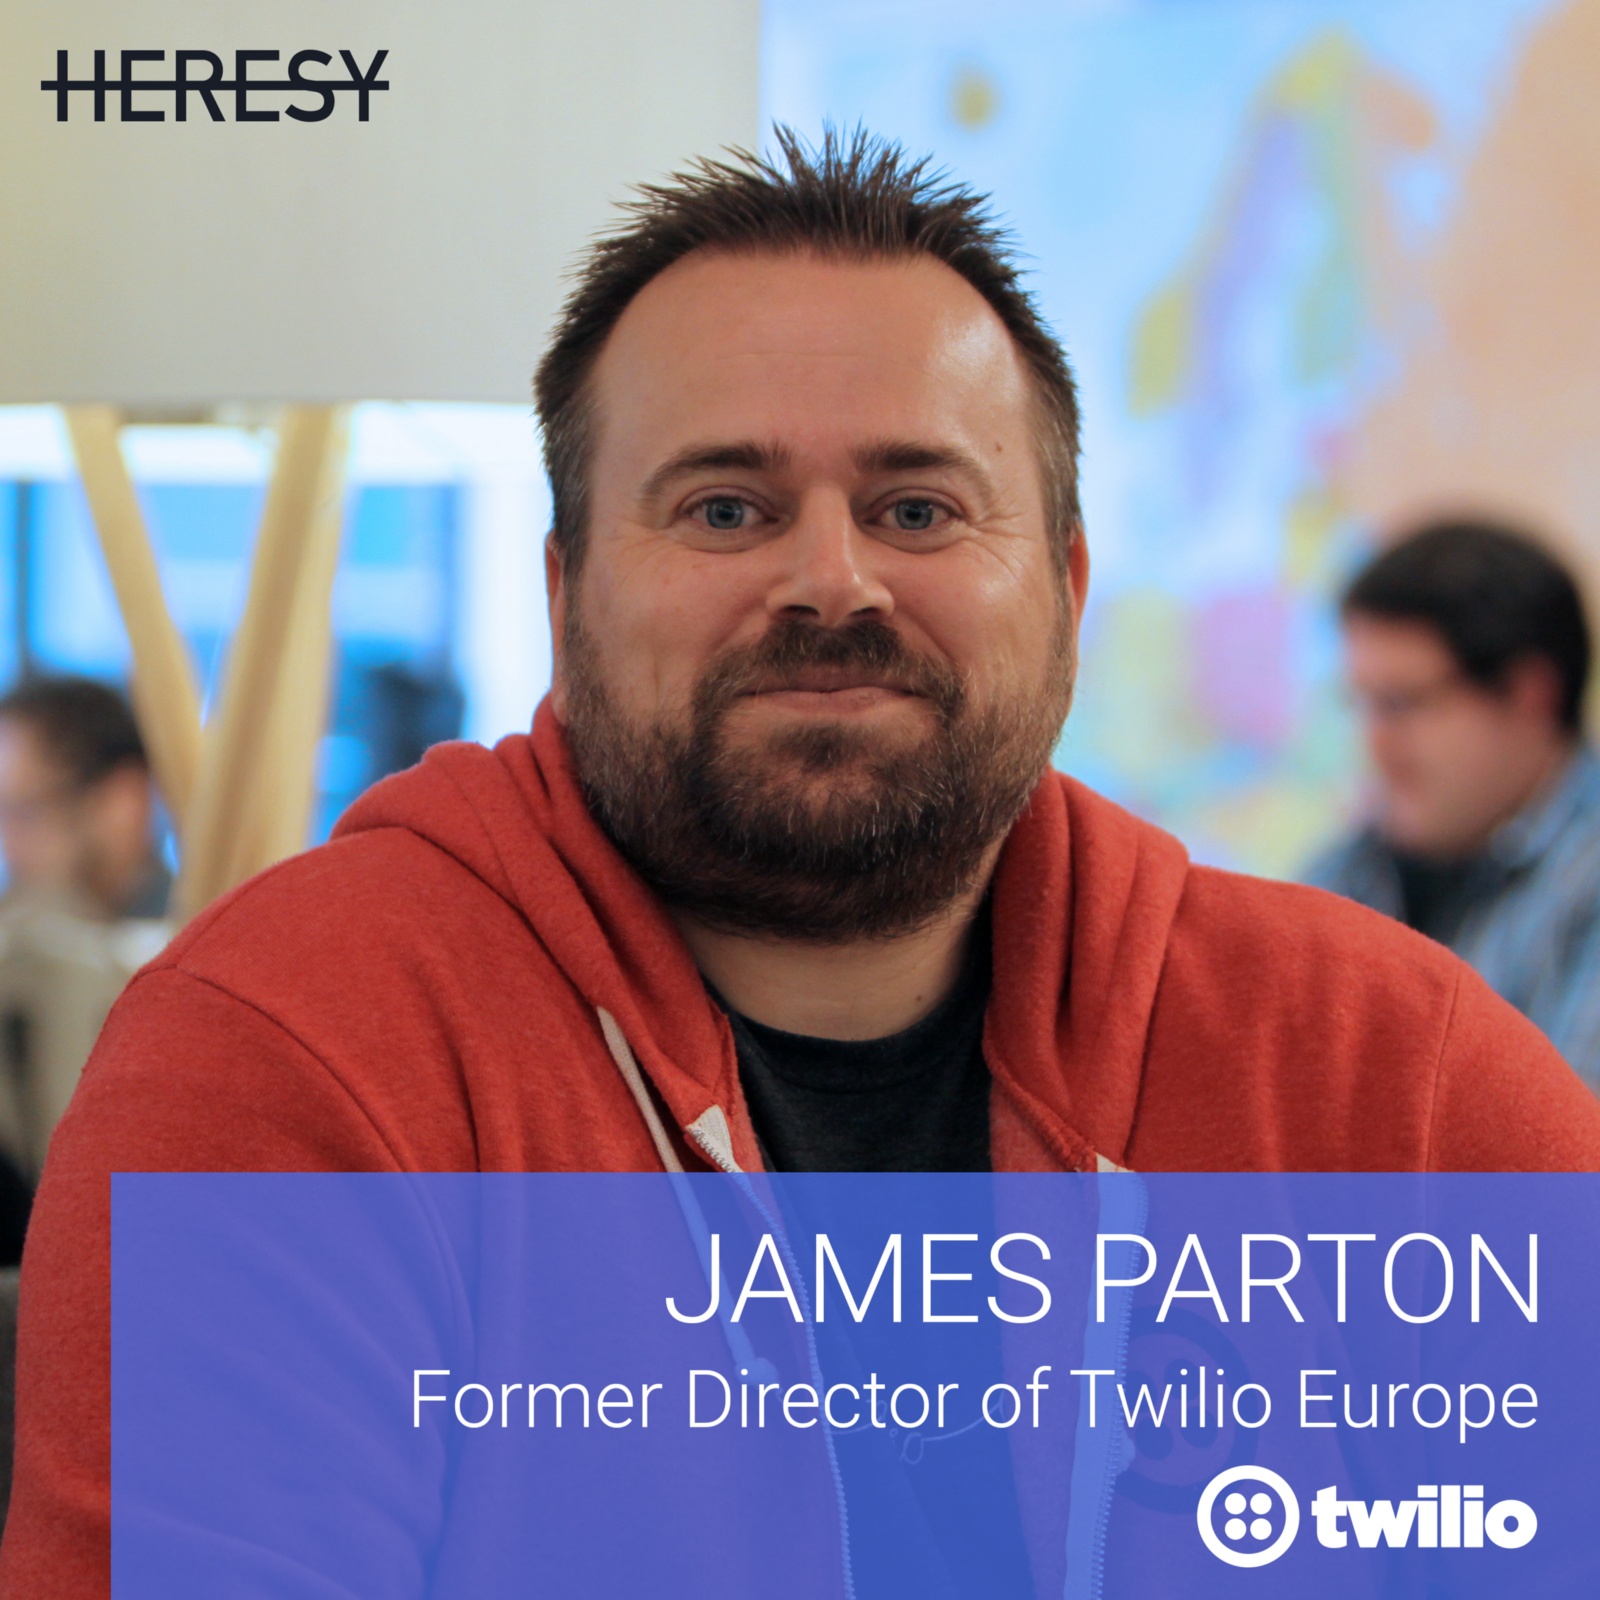 Heresy podcast 5:  James Parton, Former Head of Europe @ Twilio on developer-led sales